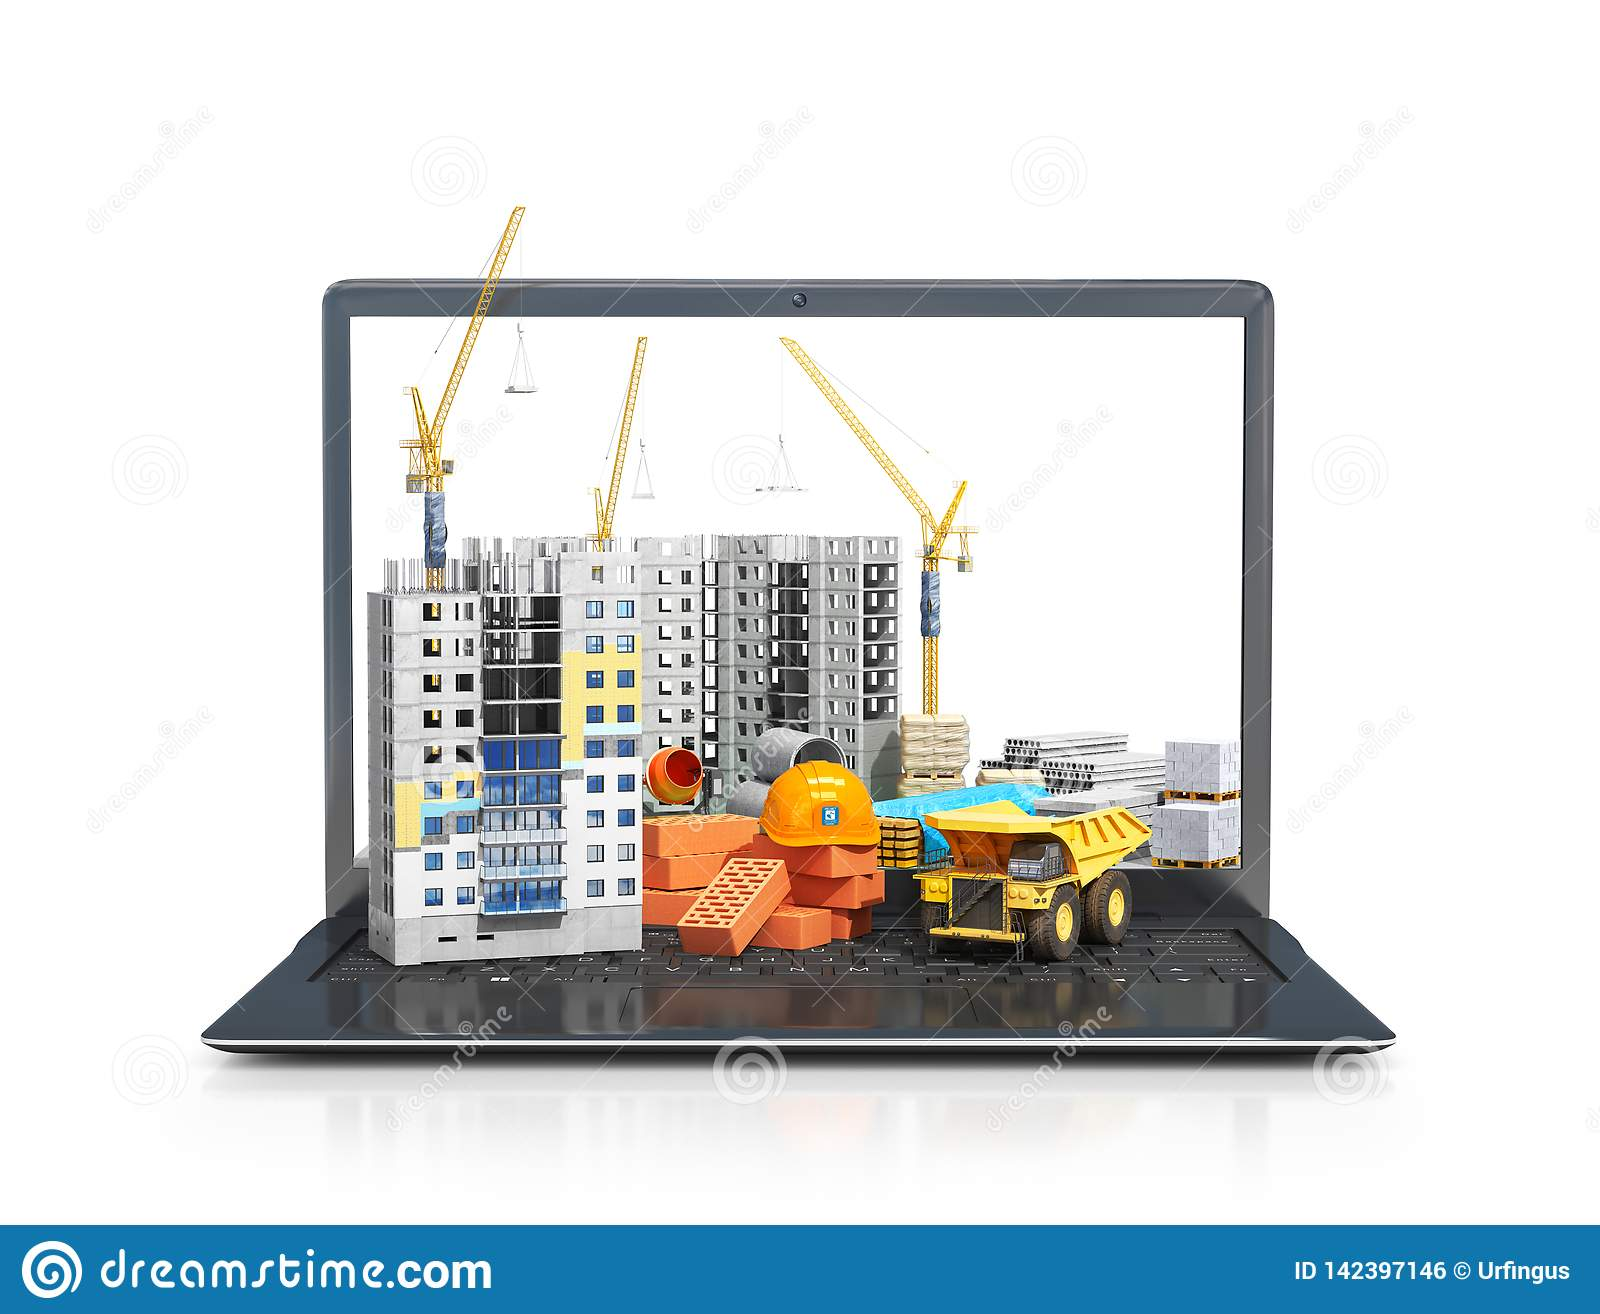 Construction Site On The Screen Of A Portable Computer Skyscraper